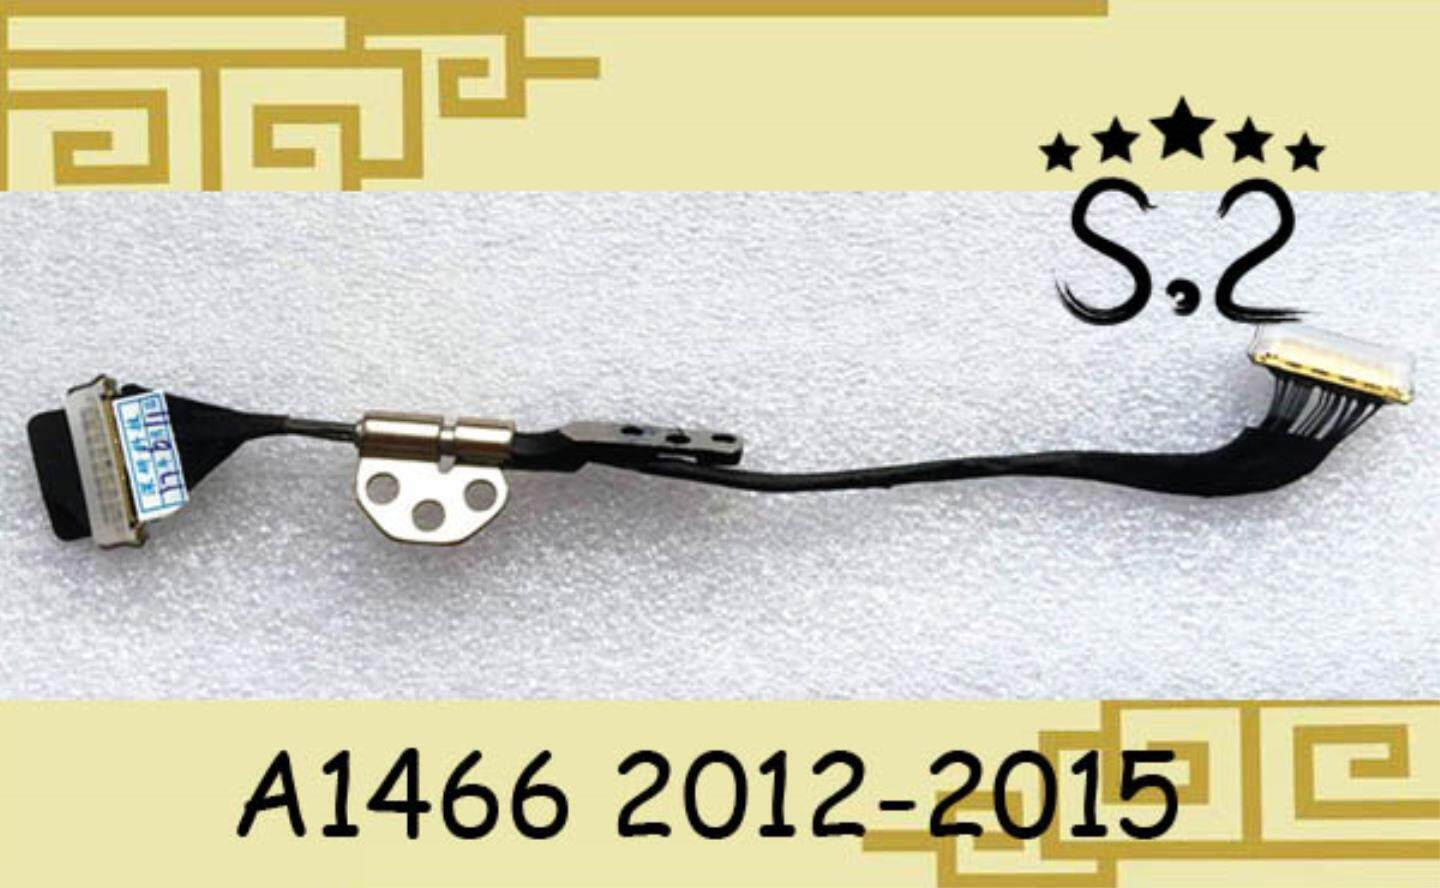 New Lcd Led Lvds Screen Cable For Macbook Air A1369 A1466 13.3 2010-2015 Year Test Working Well